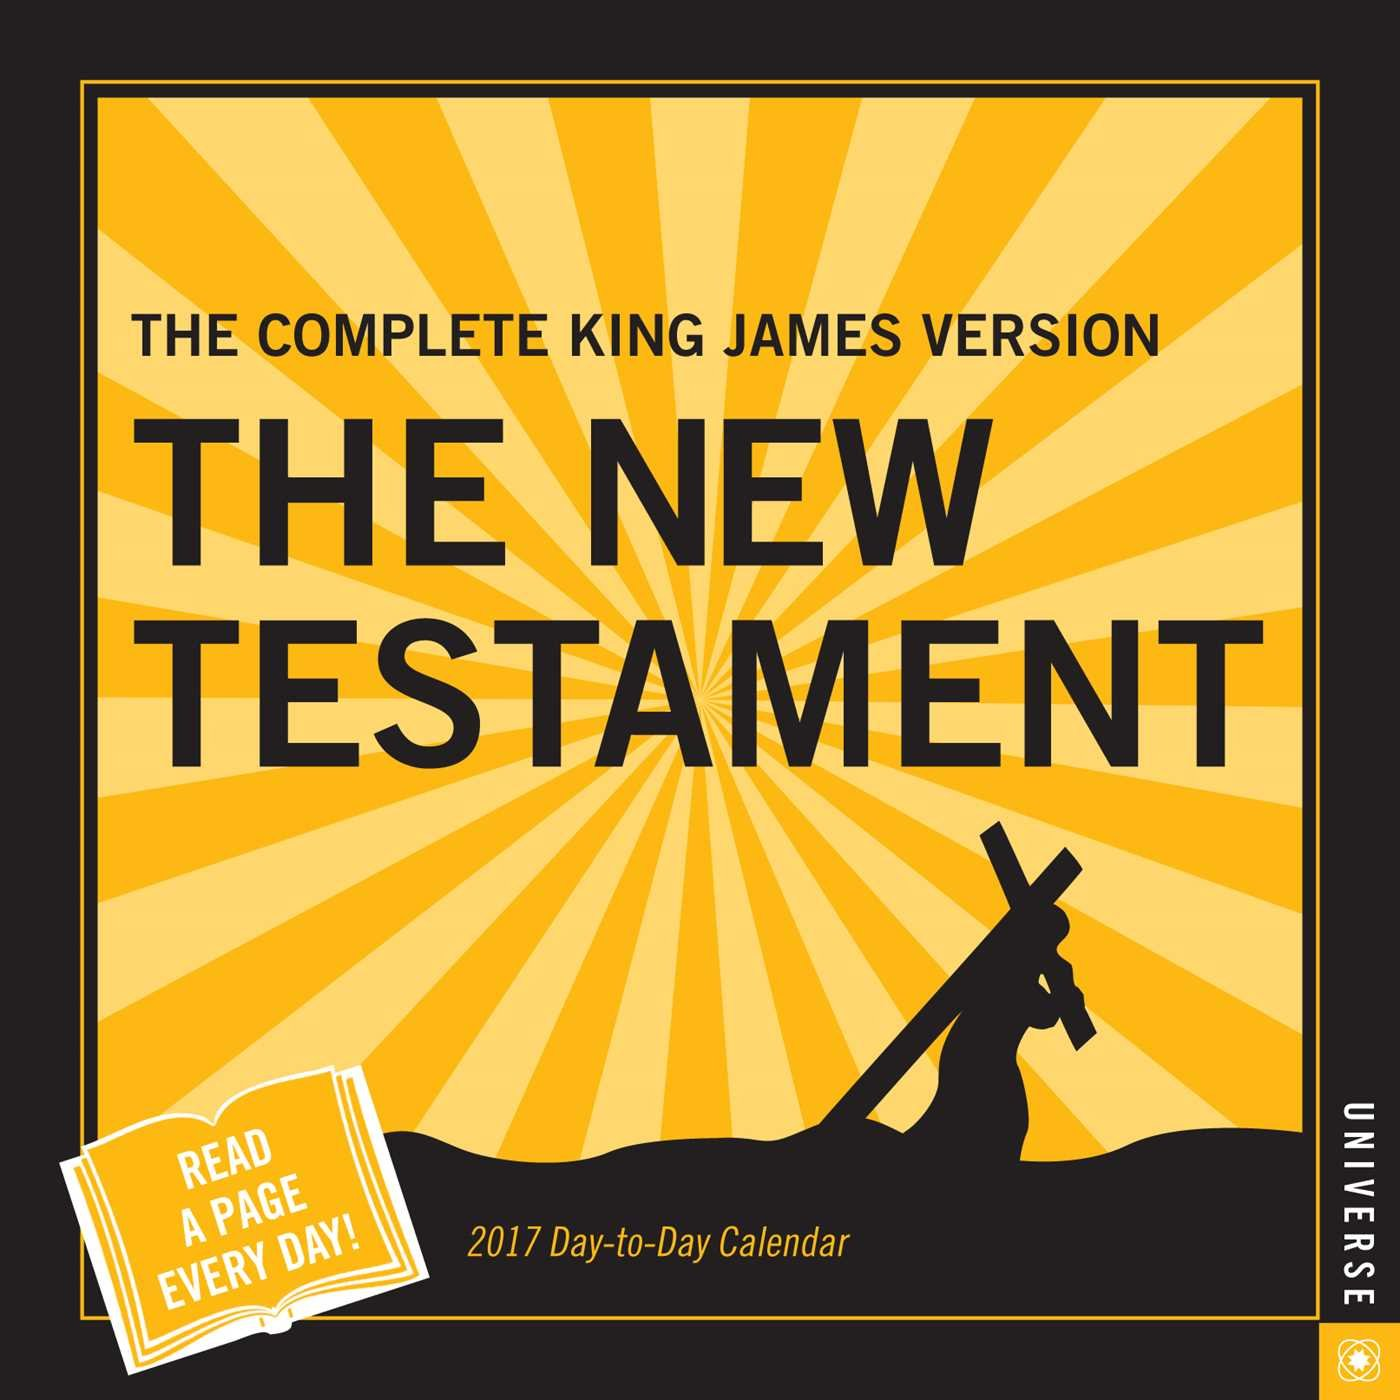 Download The New Testament 2017 Book-in-a-Year Day-to-Day Calendar PDF